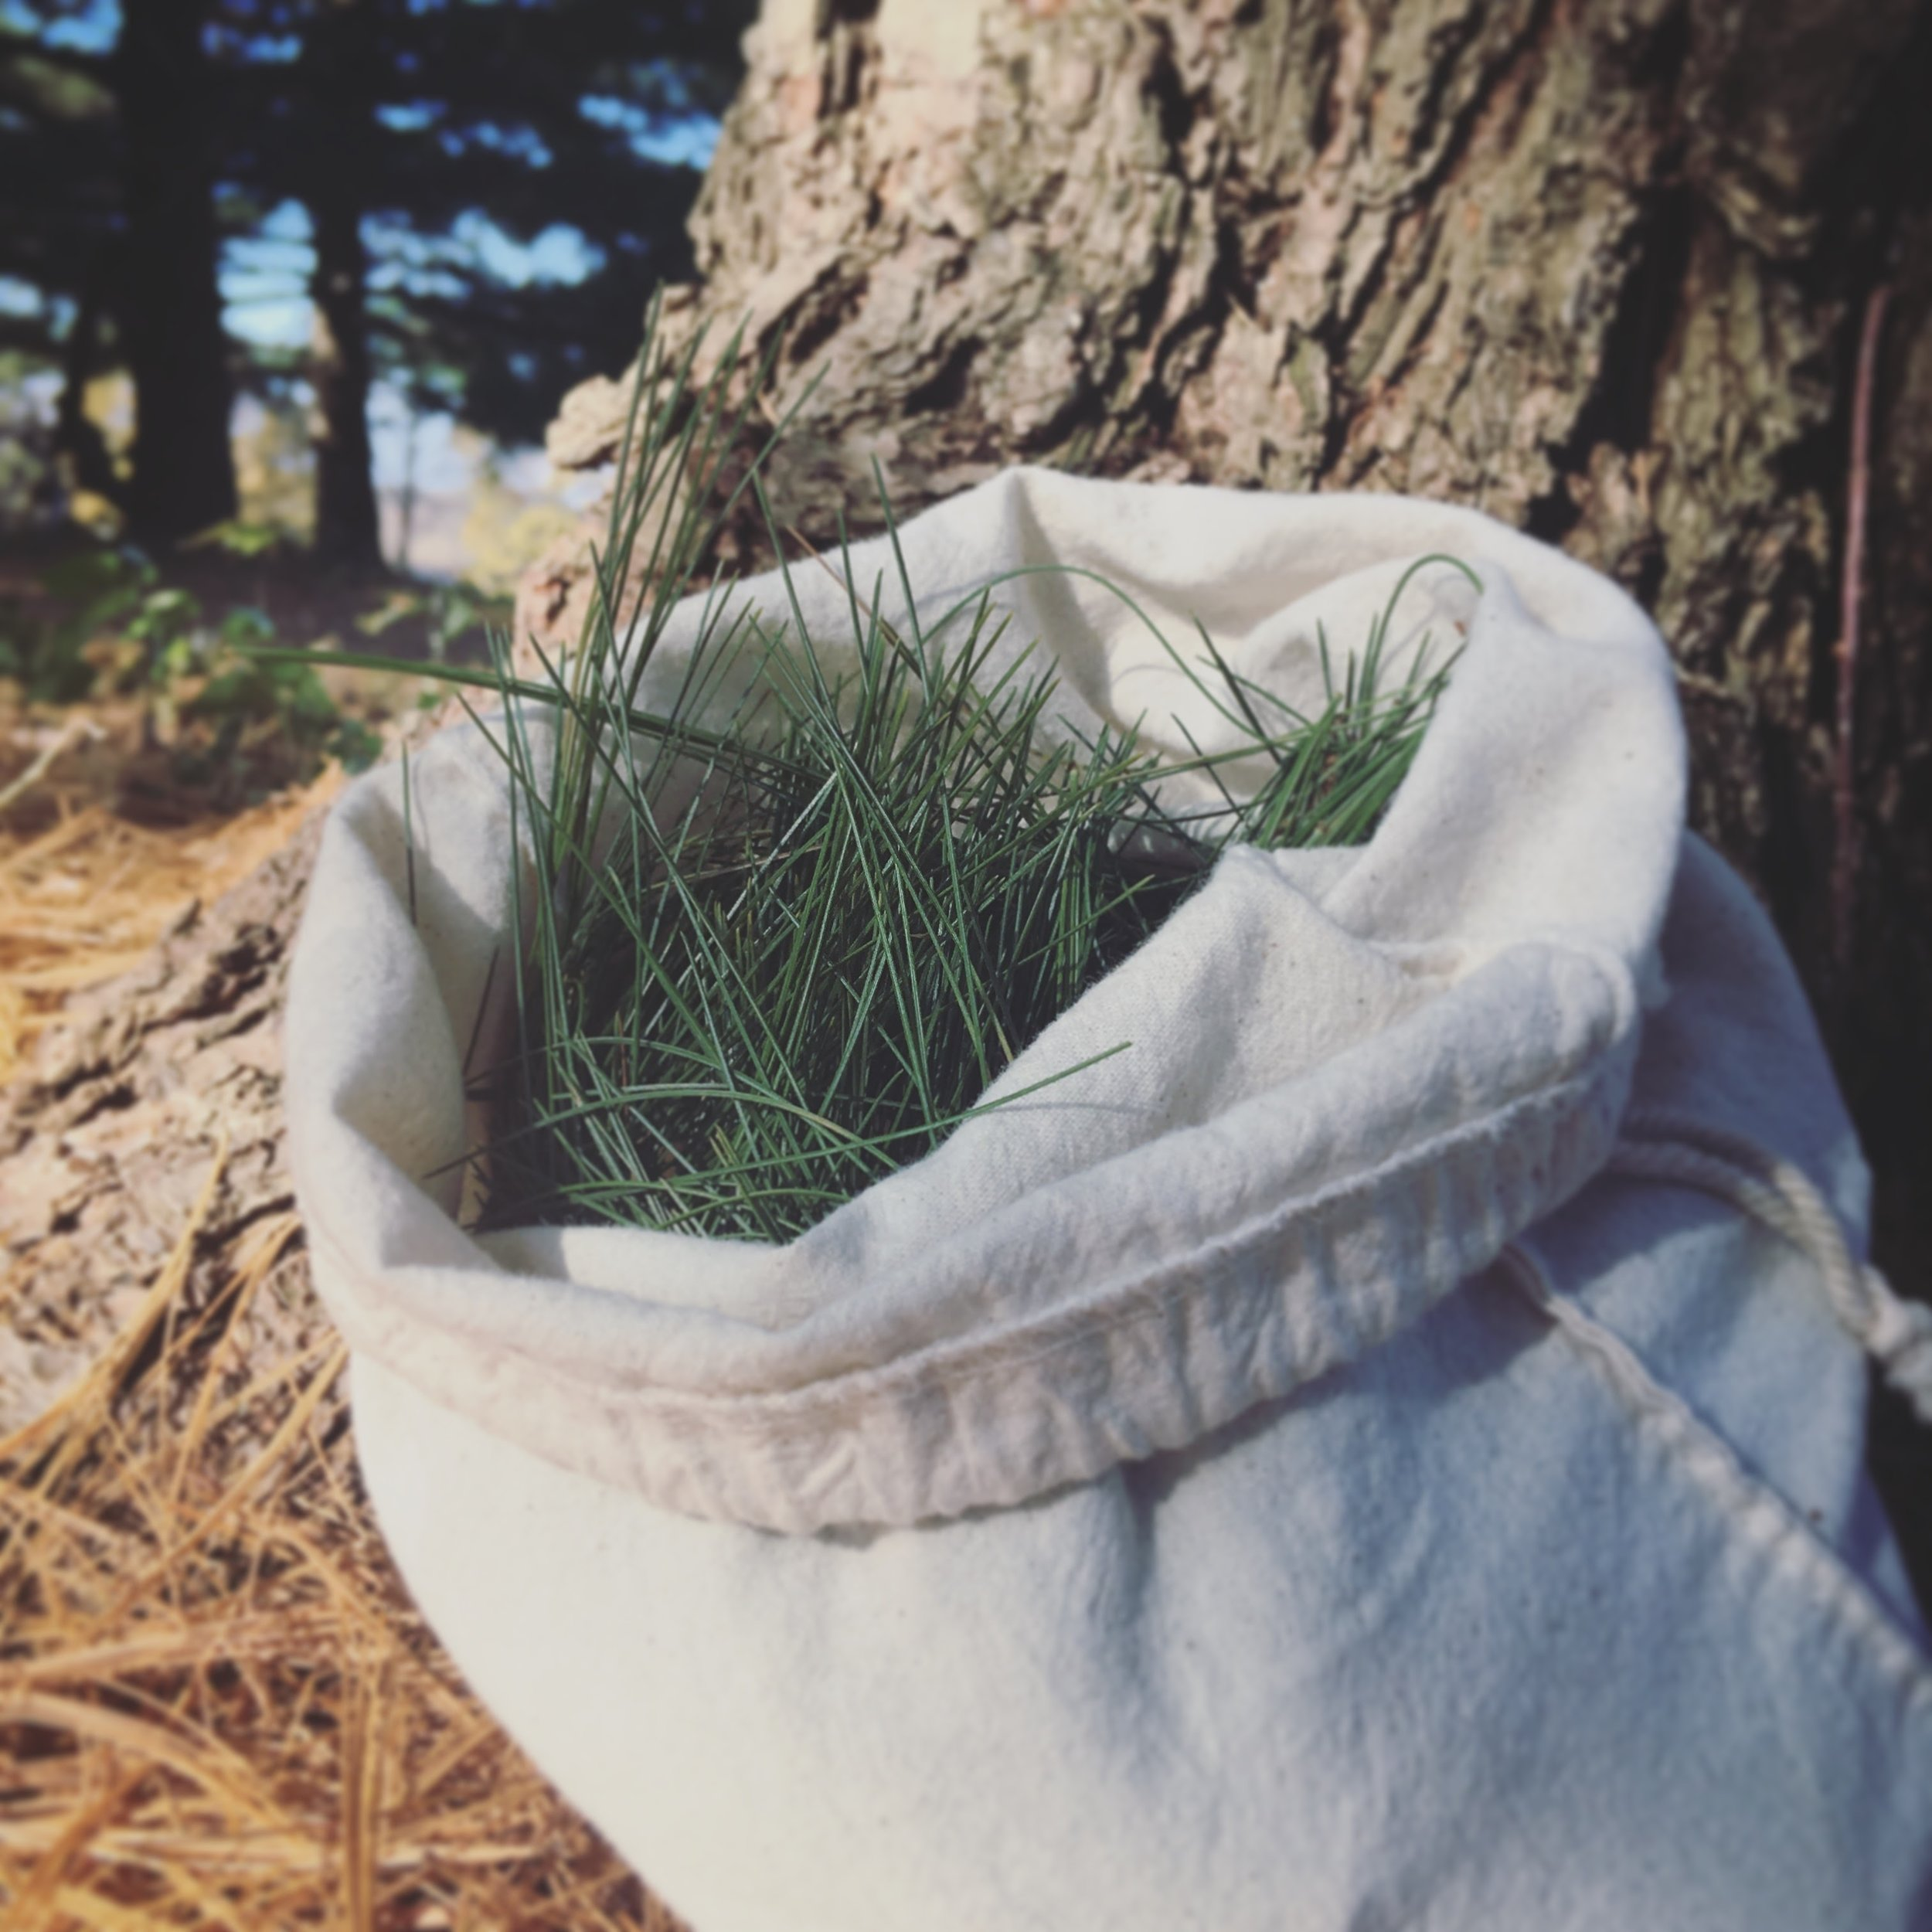 Bag of white pine needles